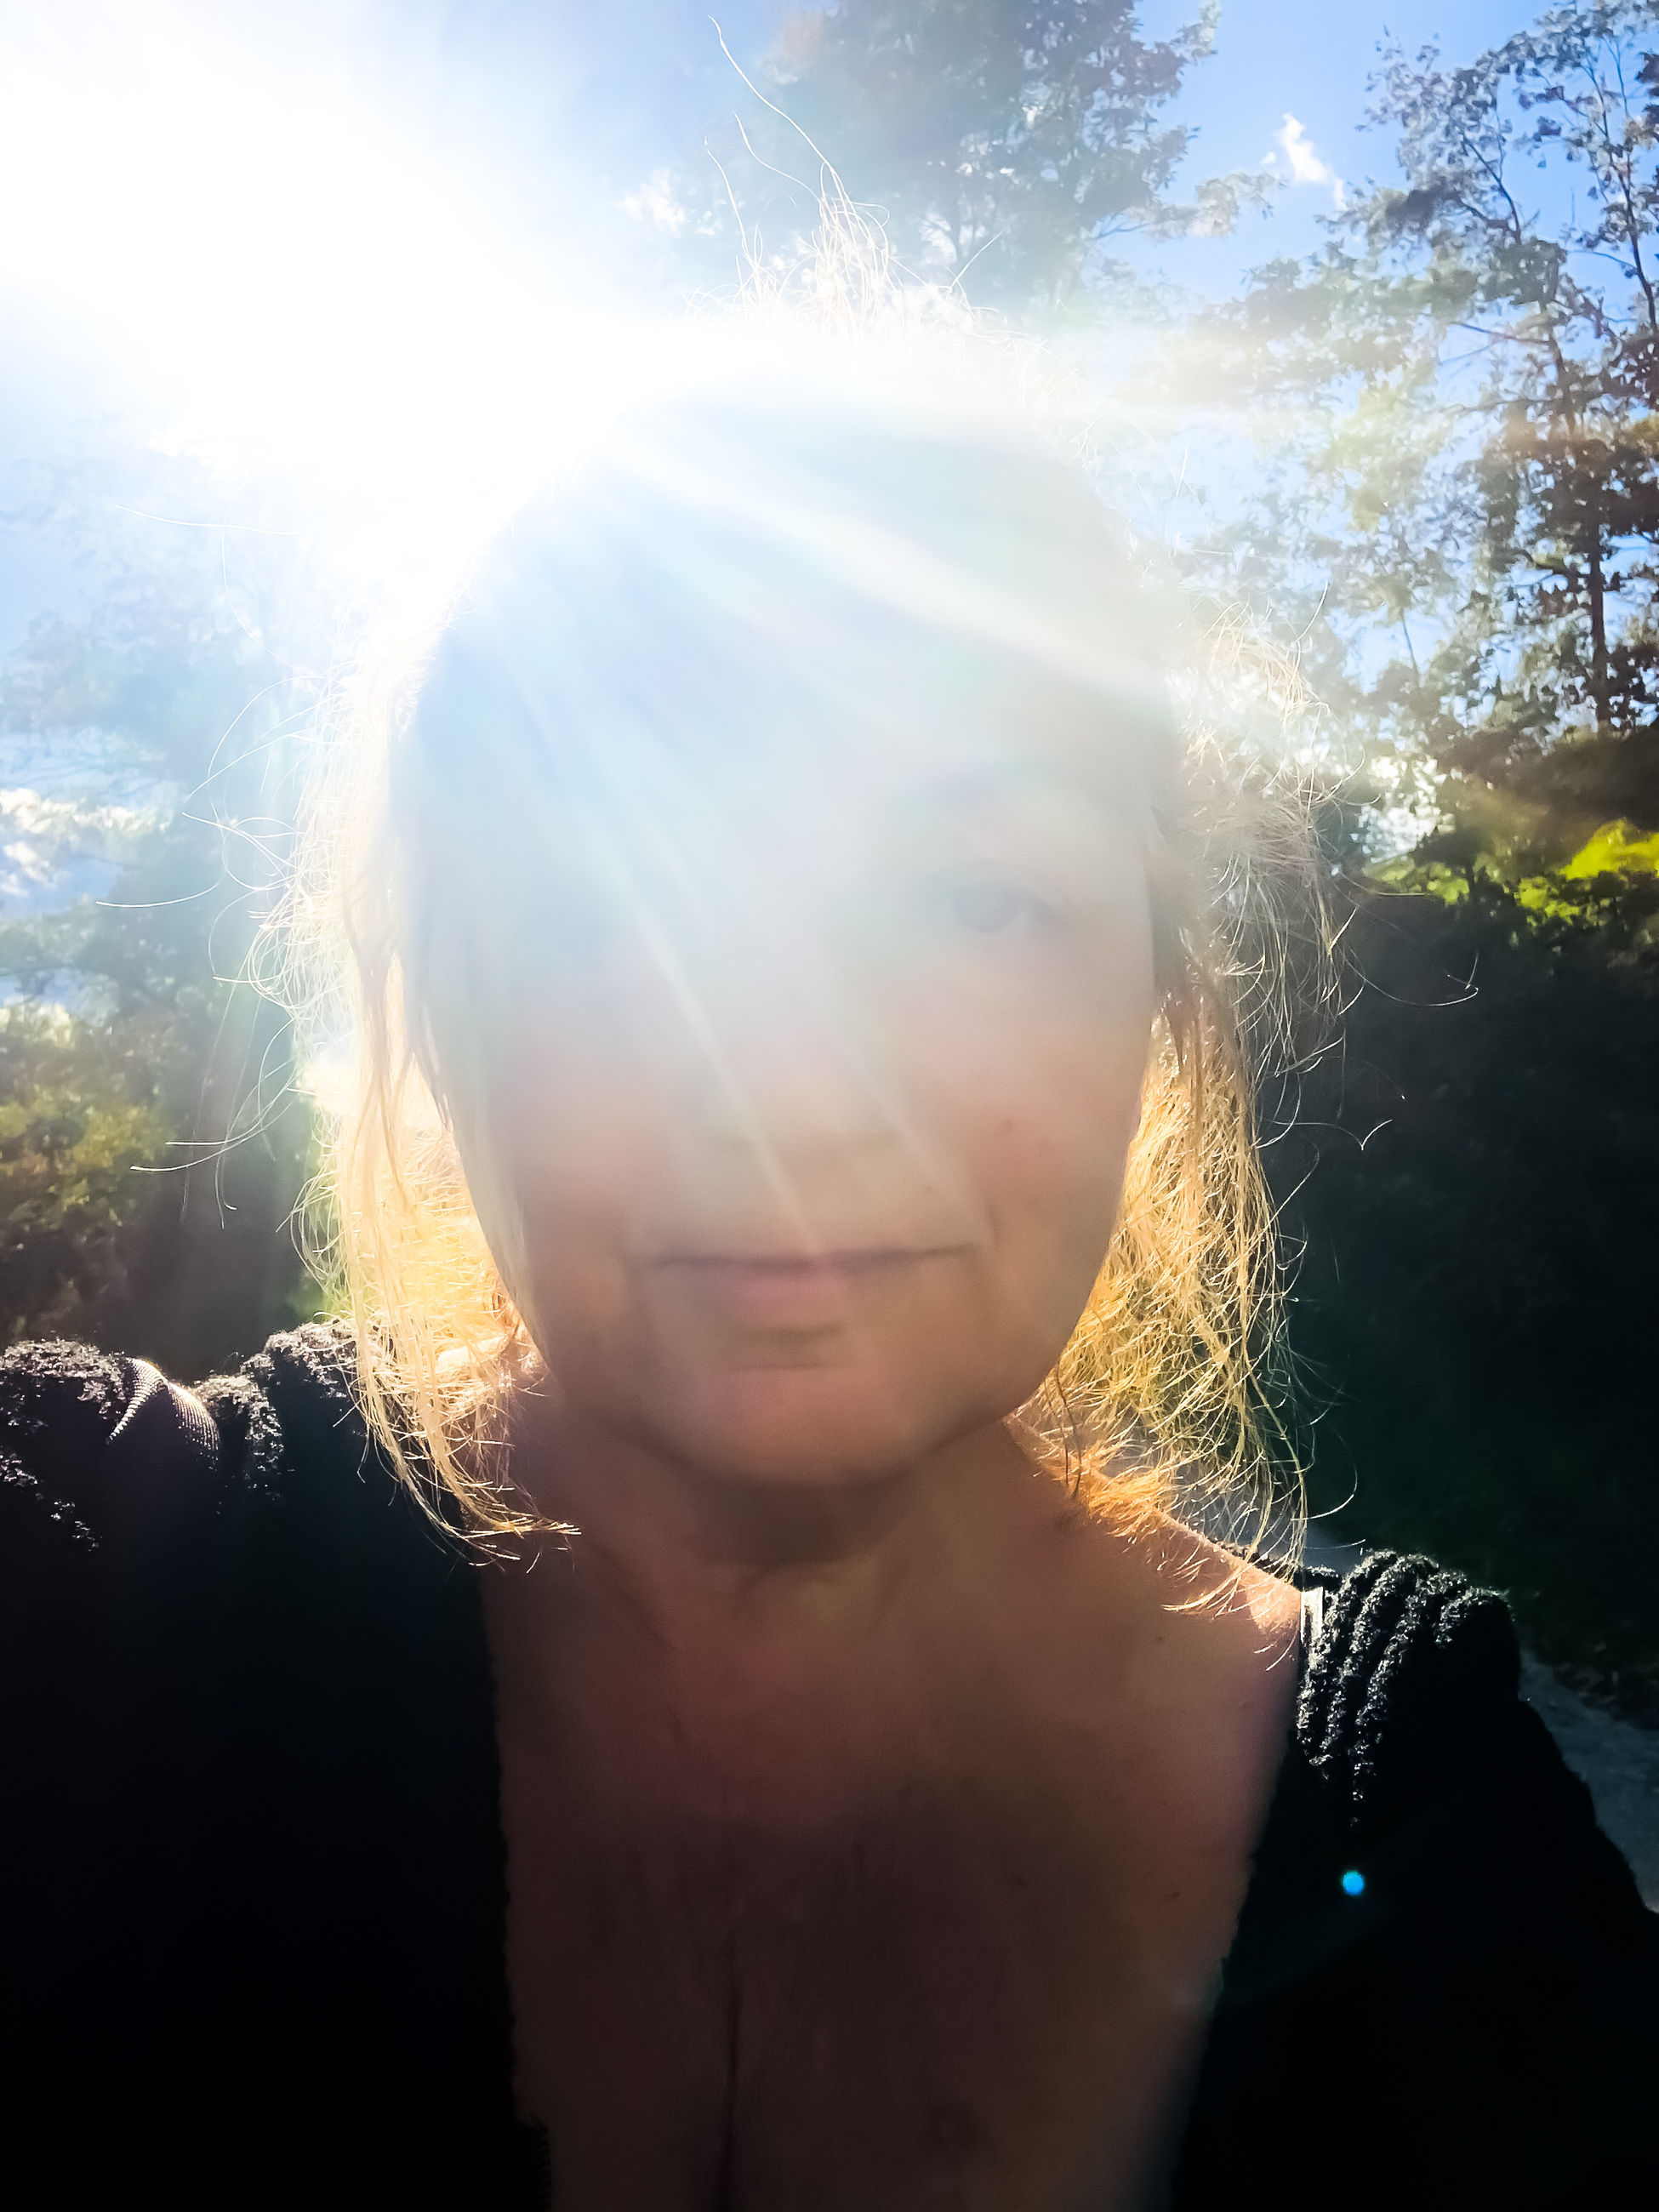 PORTRAIT OF YOUNG WOMAN AGAINST BRIGHT SUN